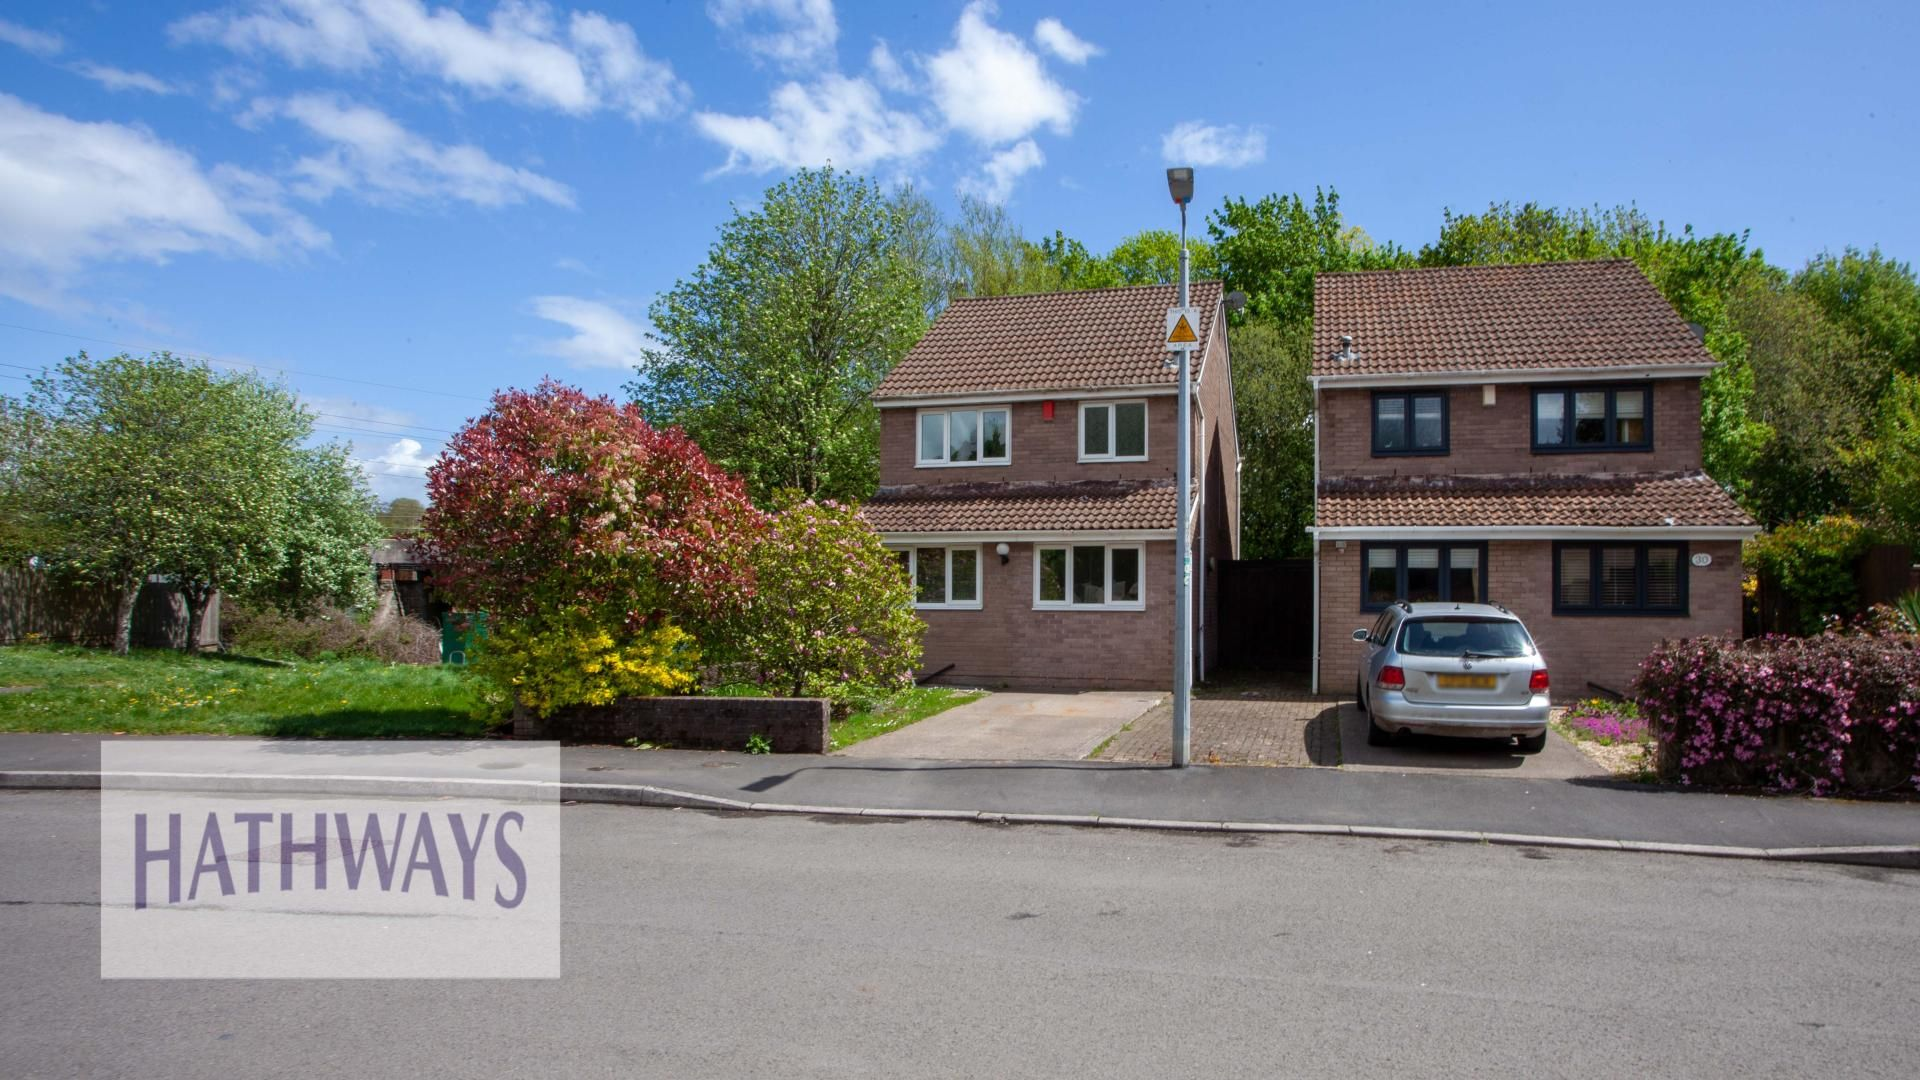 3 bed house for sale in Forge Close, NP18